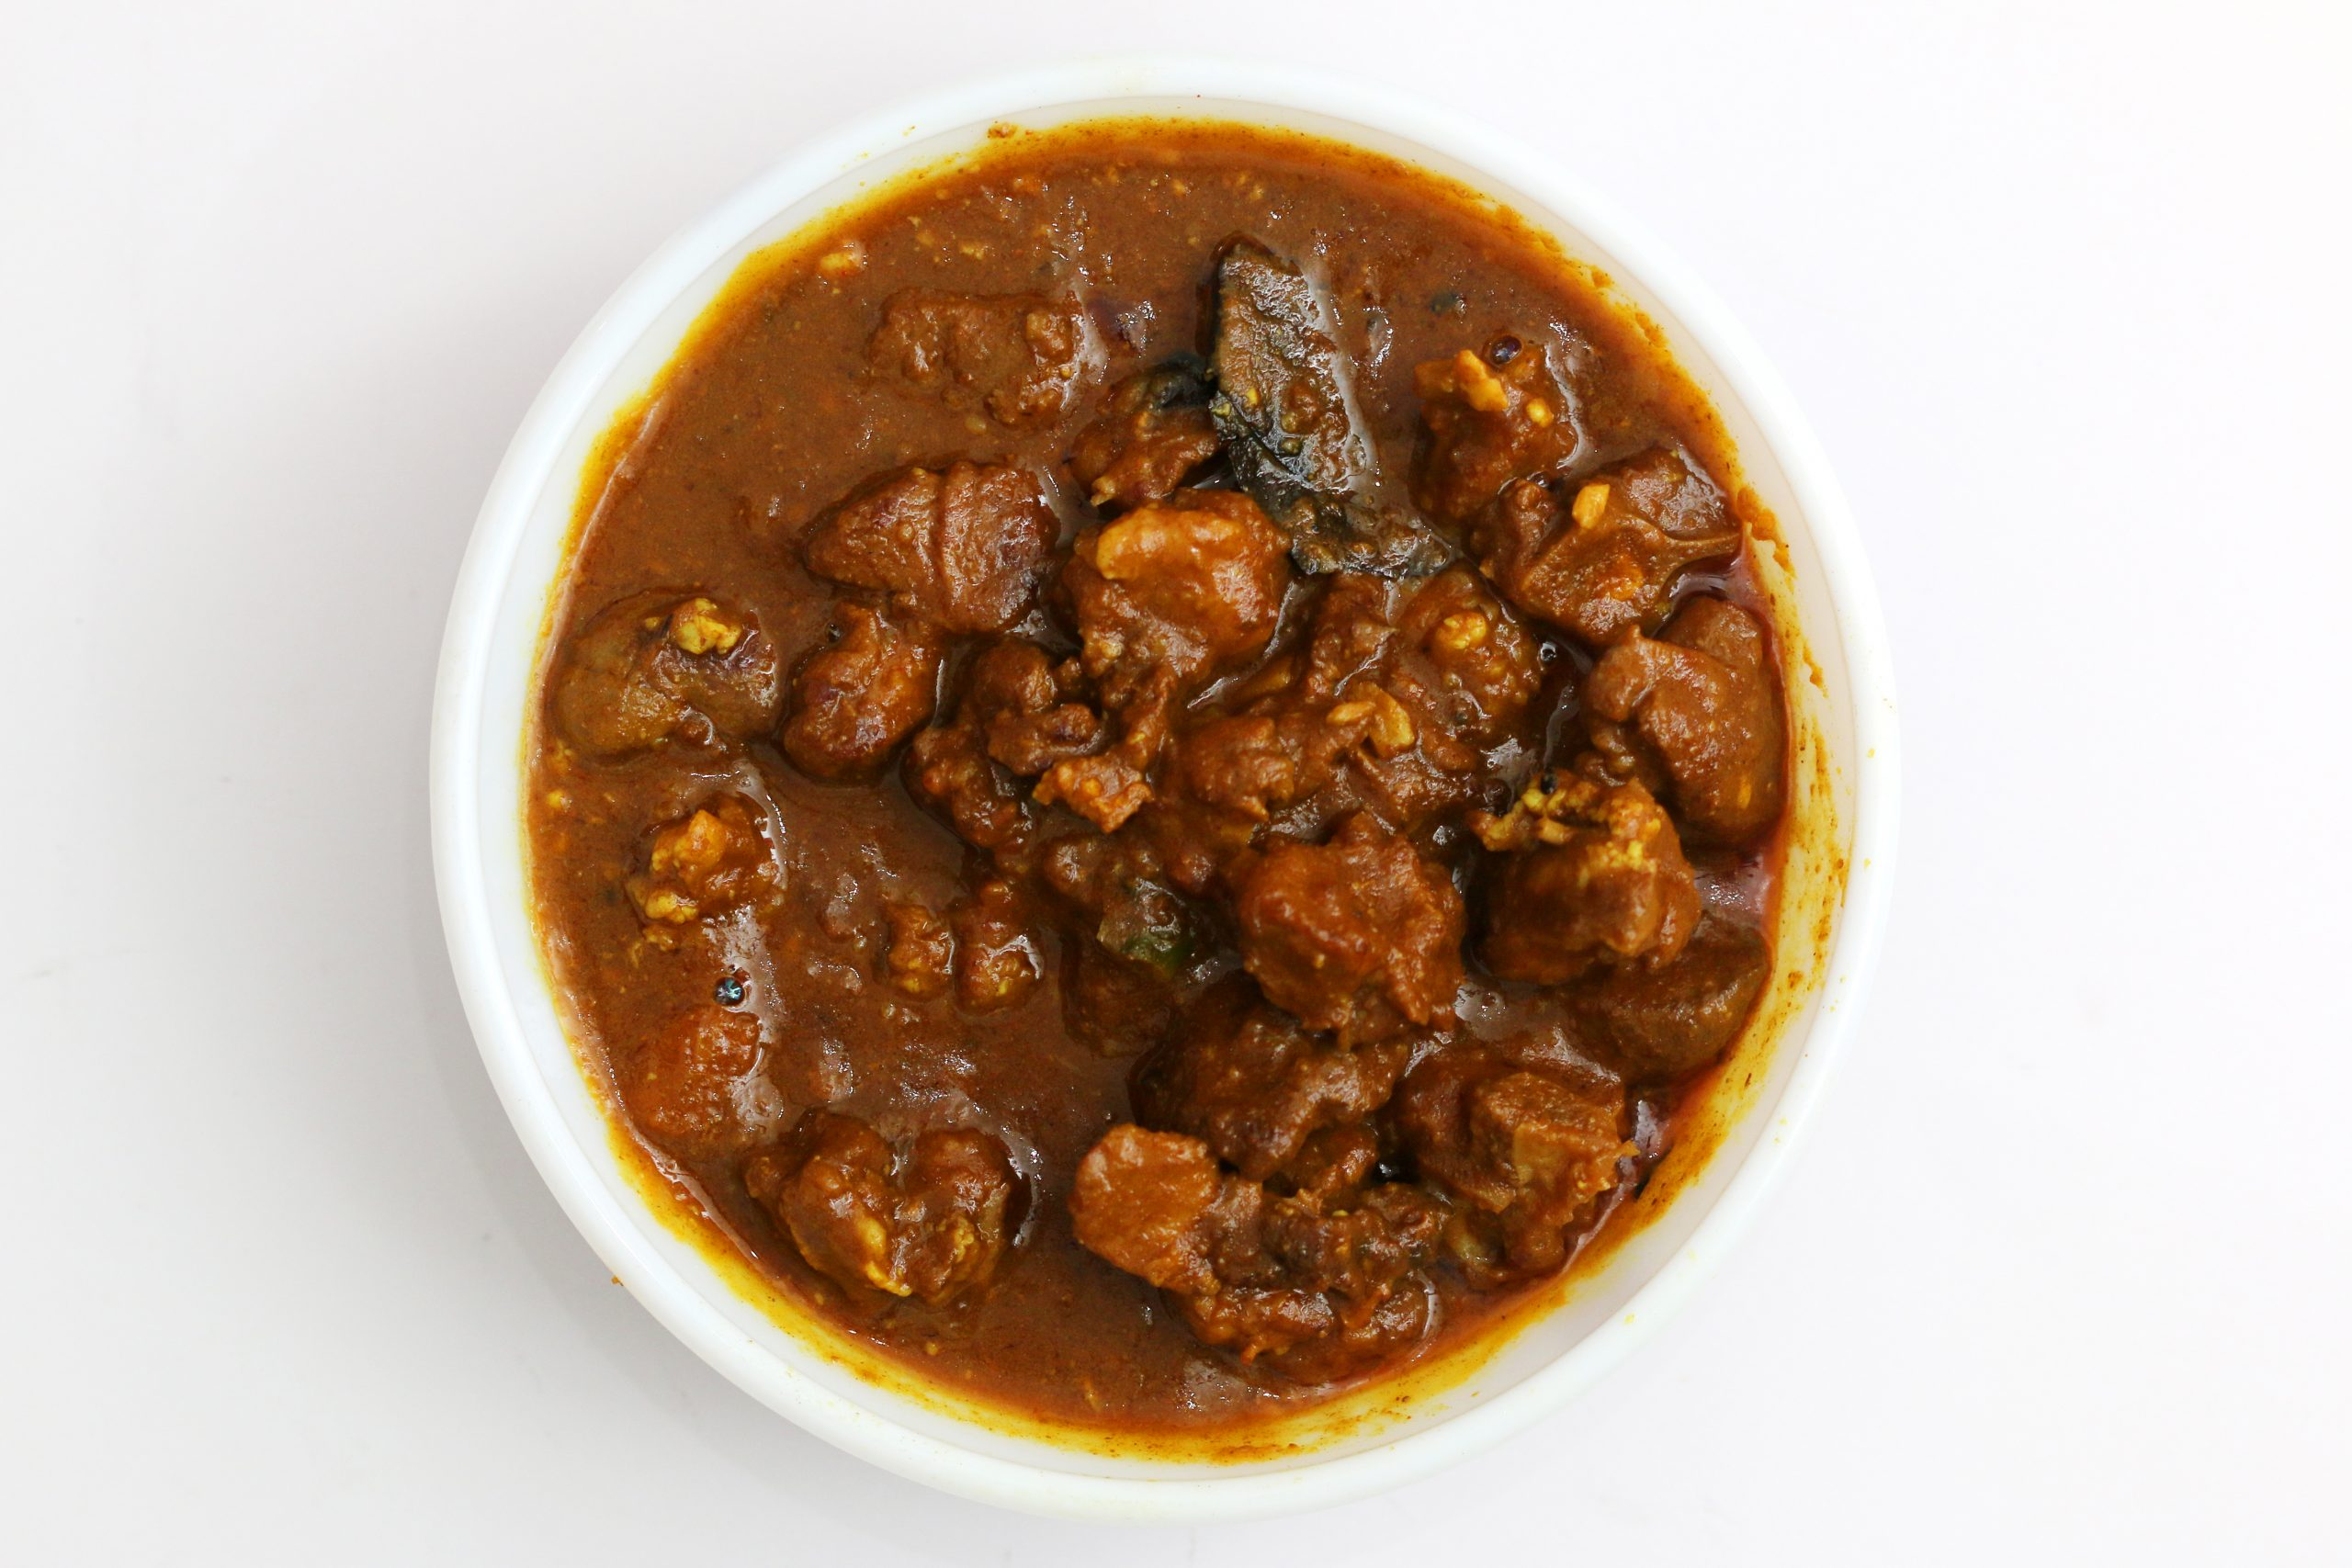 Mutton in a bowl